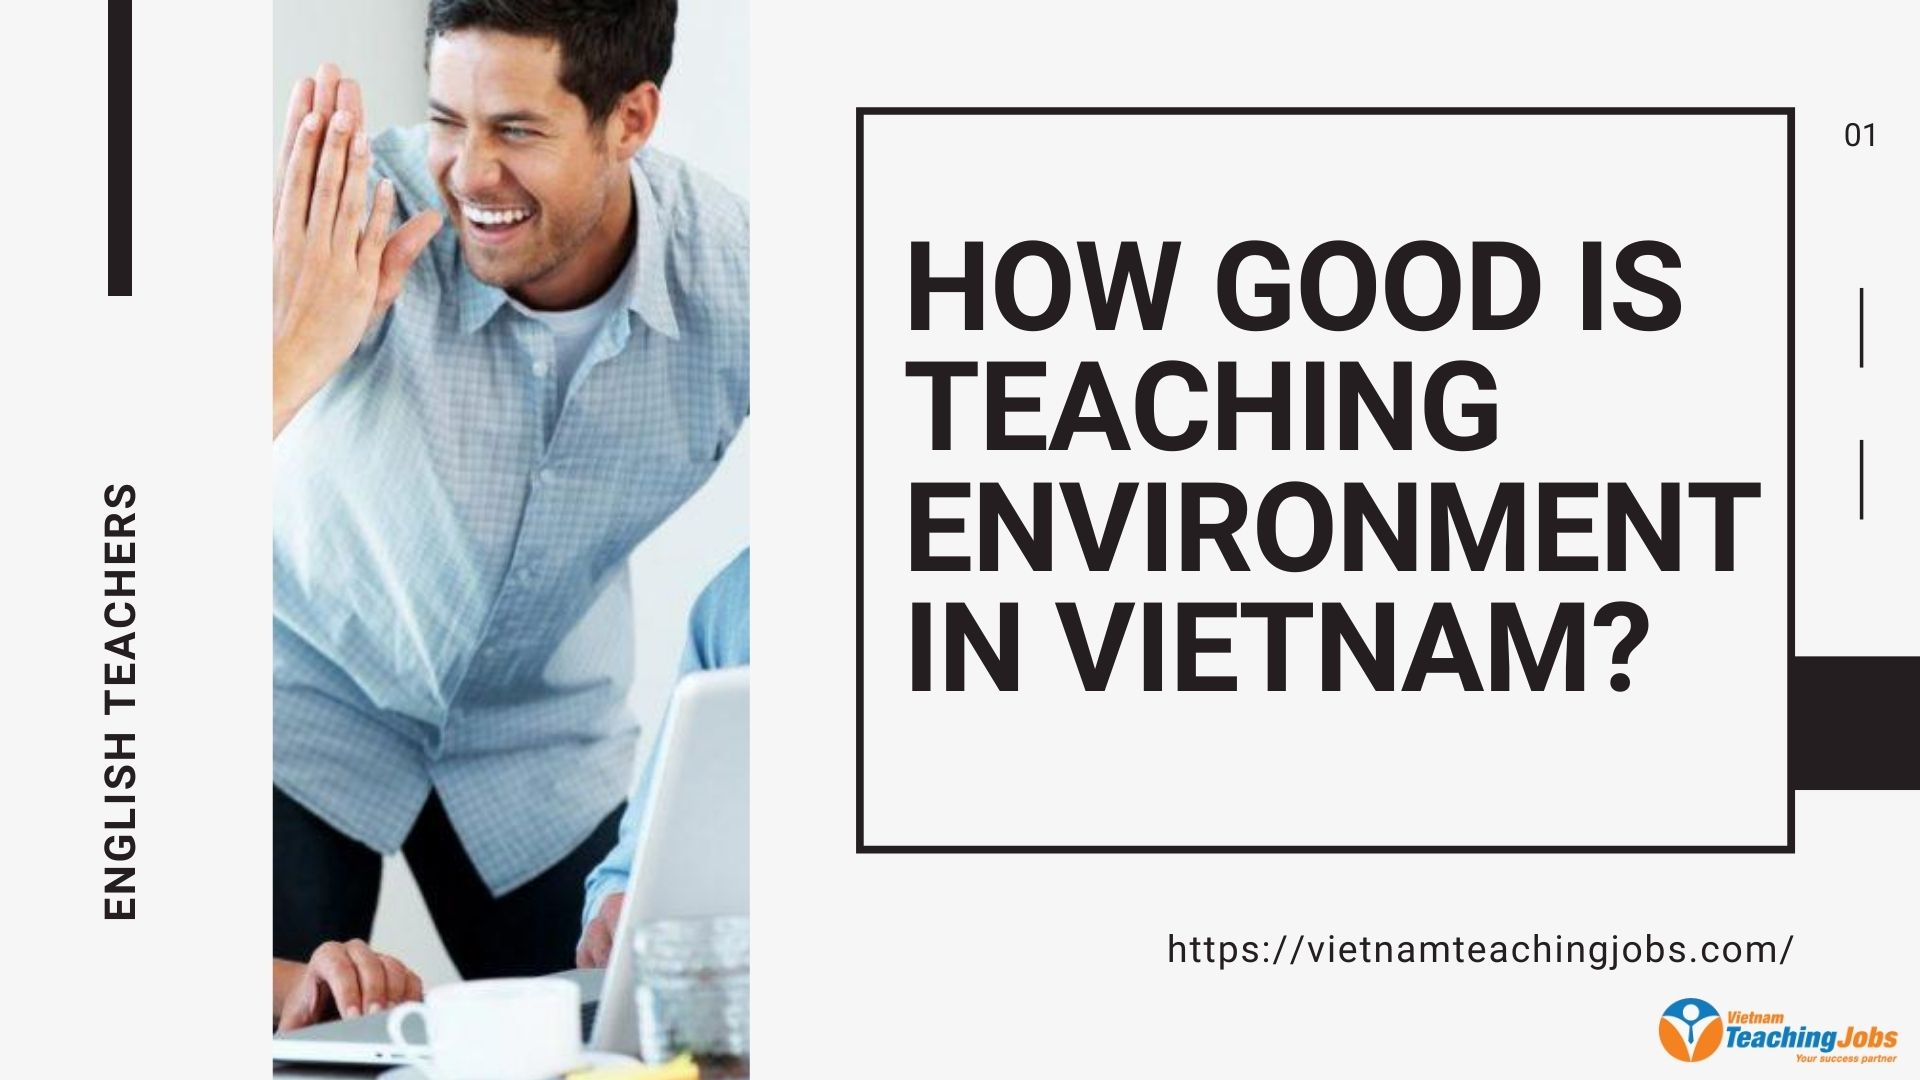 HOW GOOD IS ENGLISH TEACHING ENVIRONMENT IN VIETNAM?